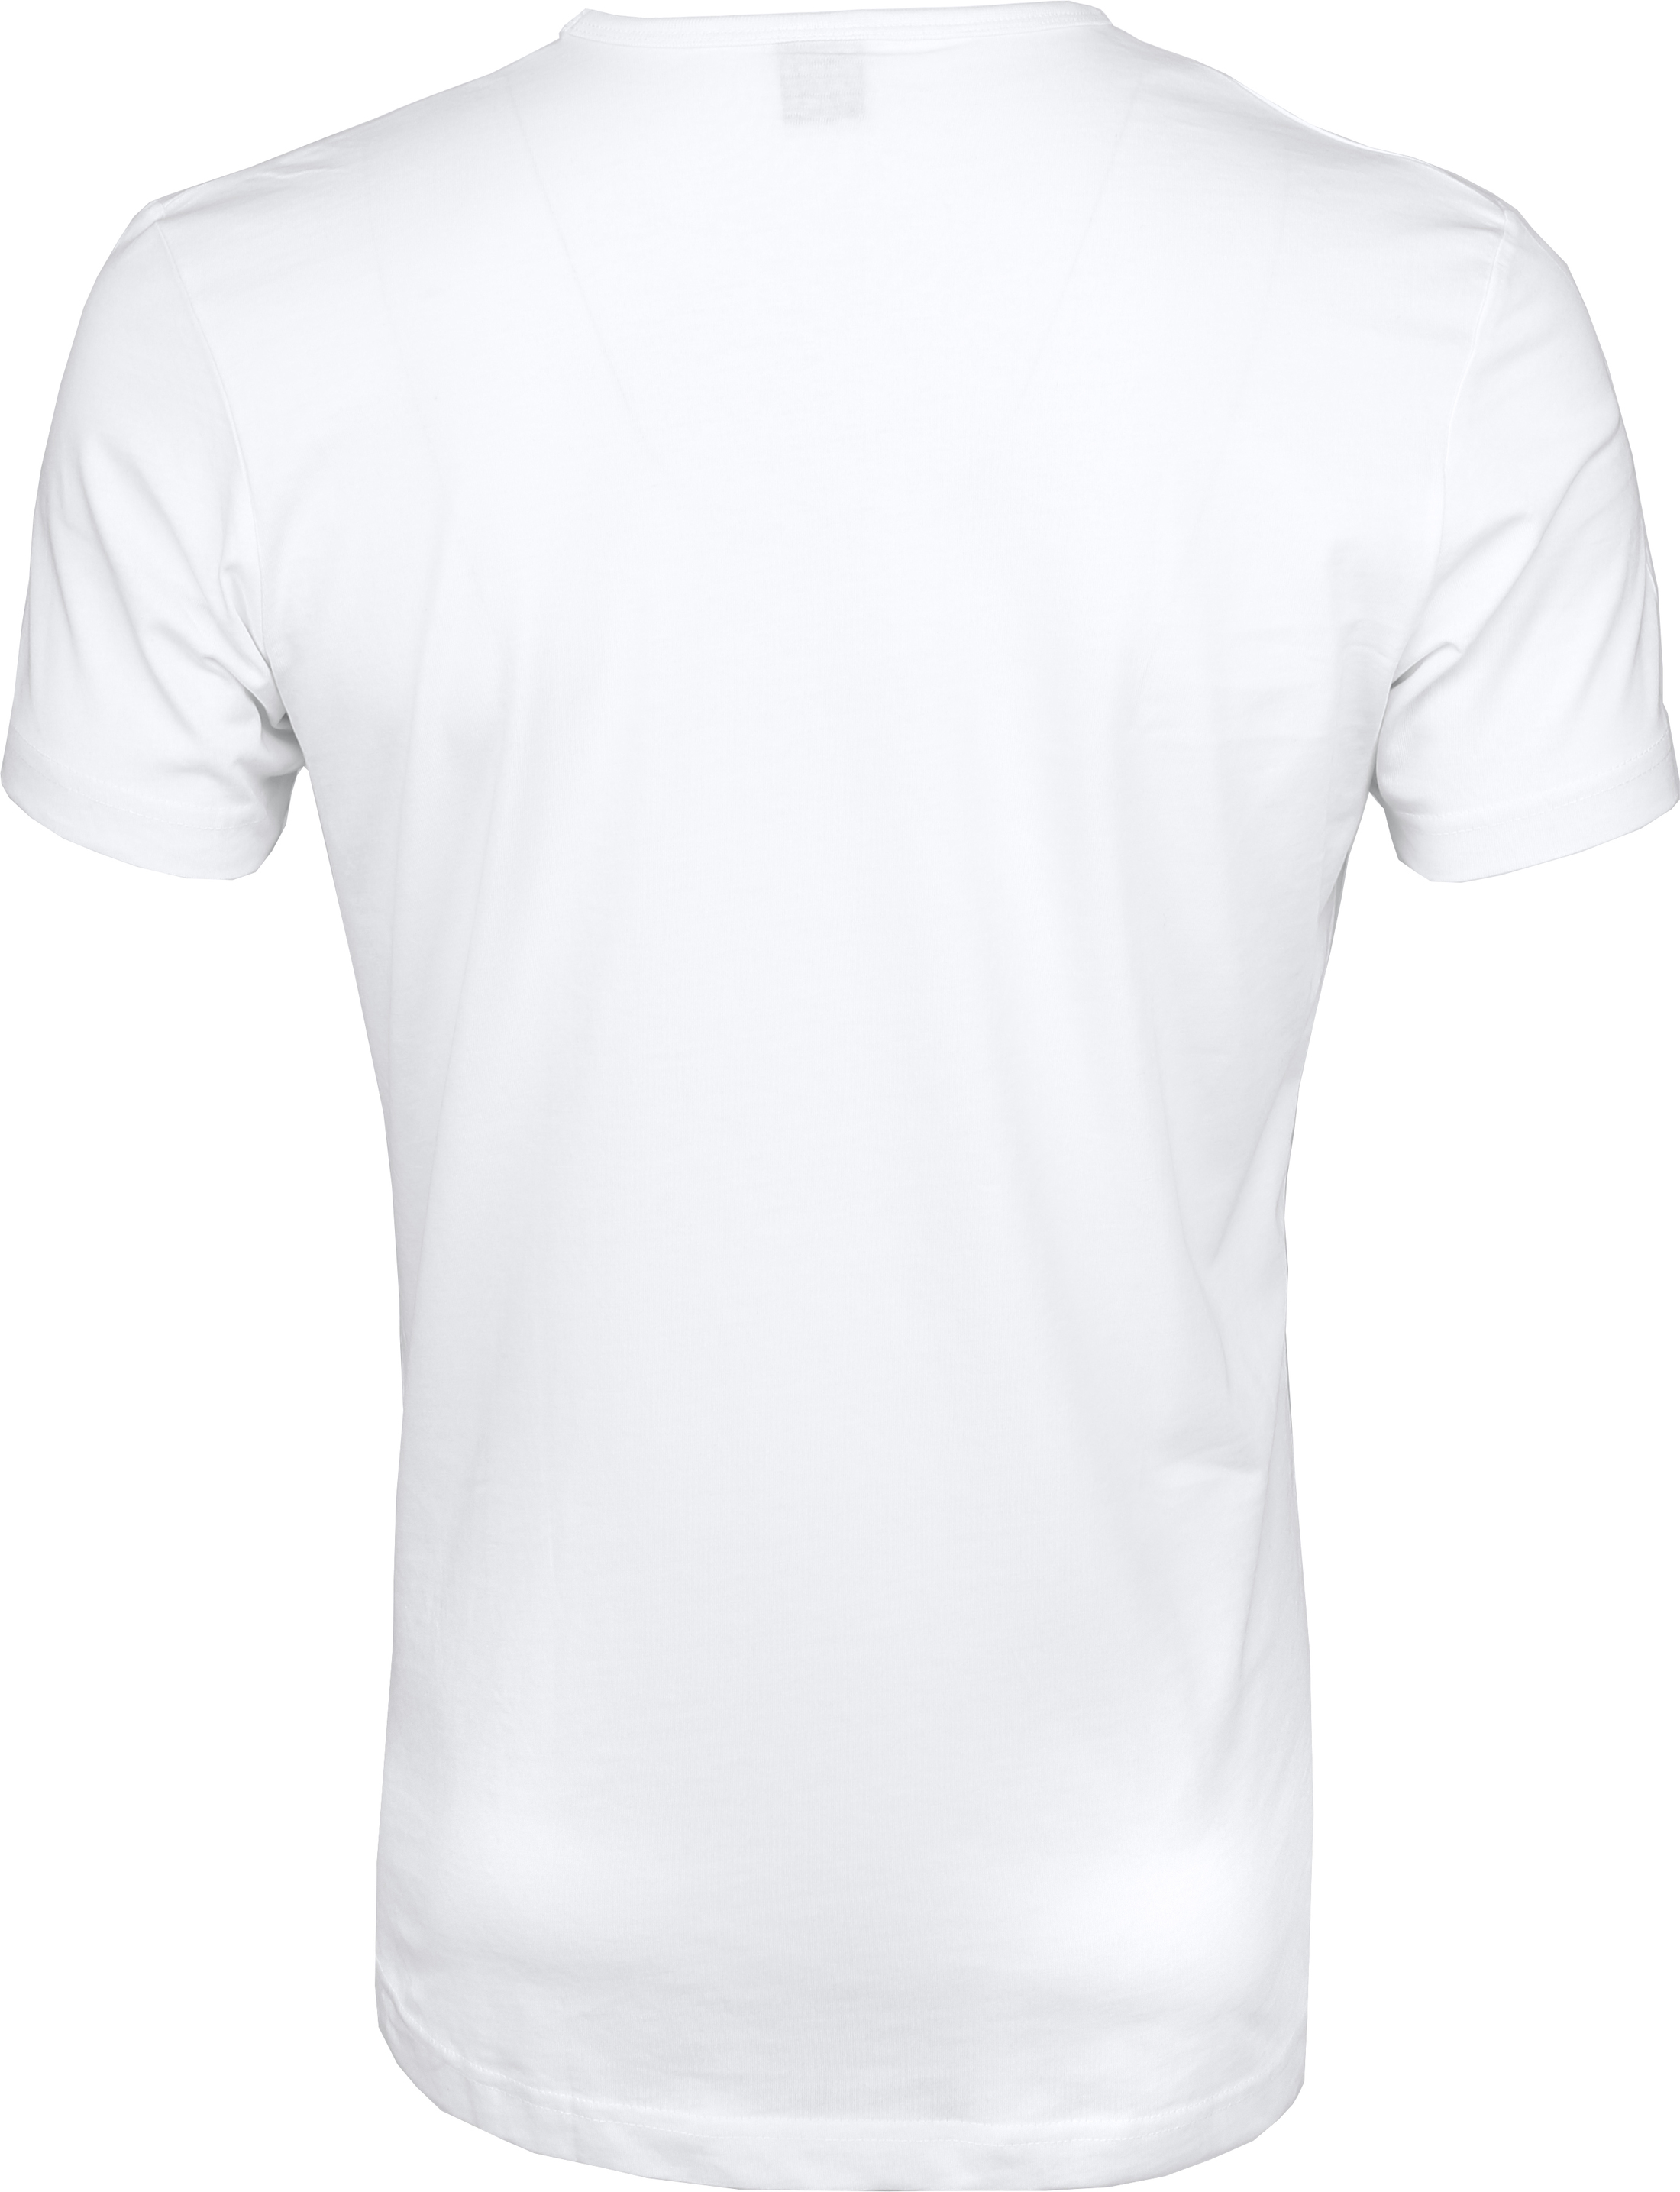 White T-shirt O-Neck 6-Pack foto 6